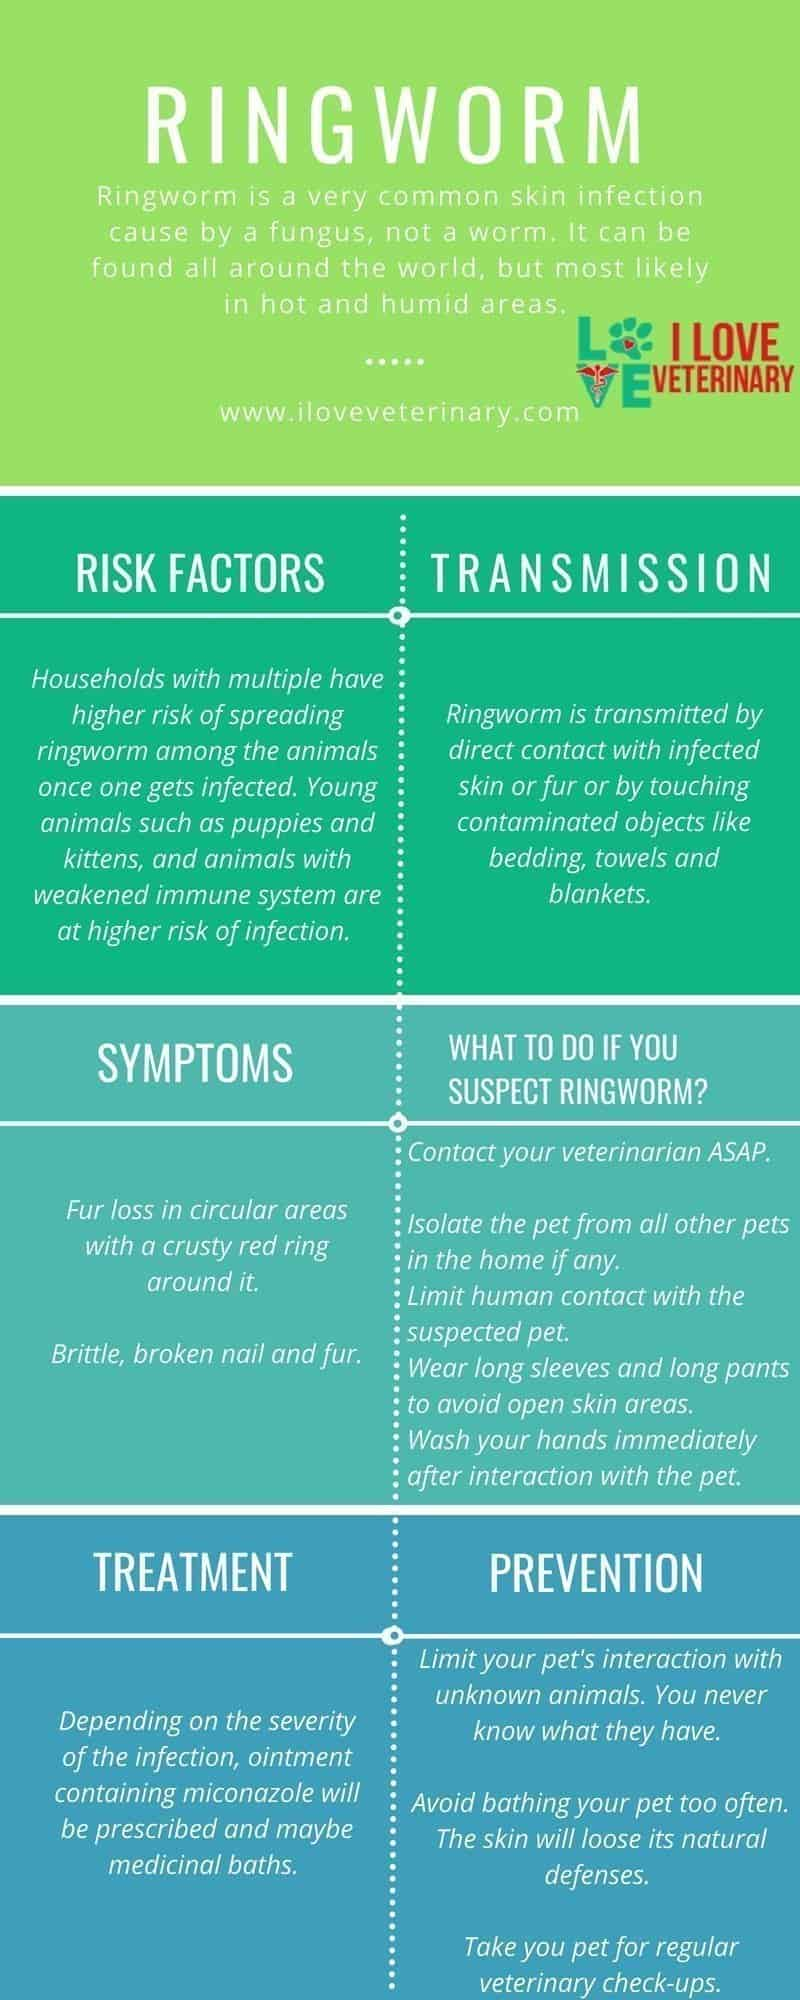 ringworm infection, dermatophytosis, pets